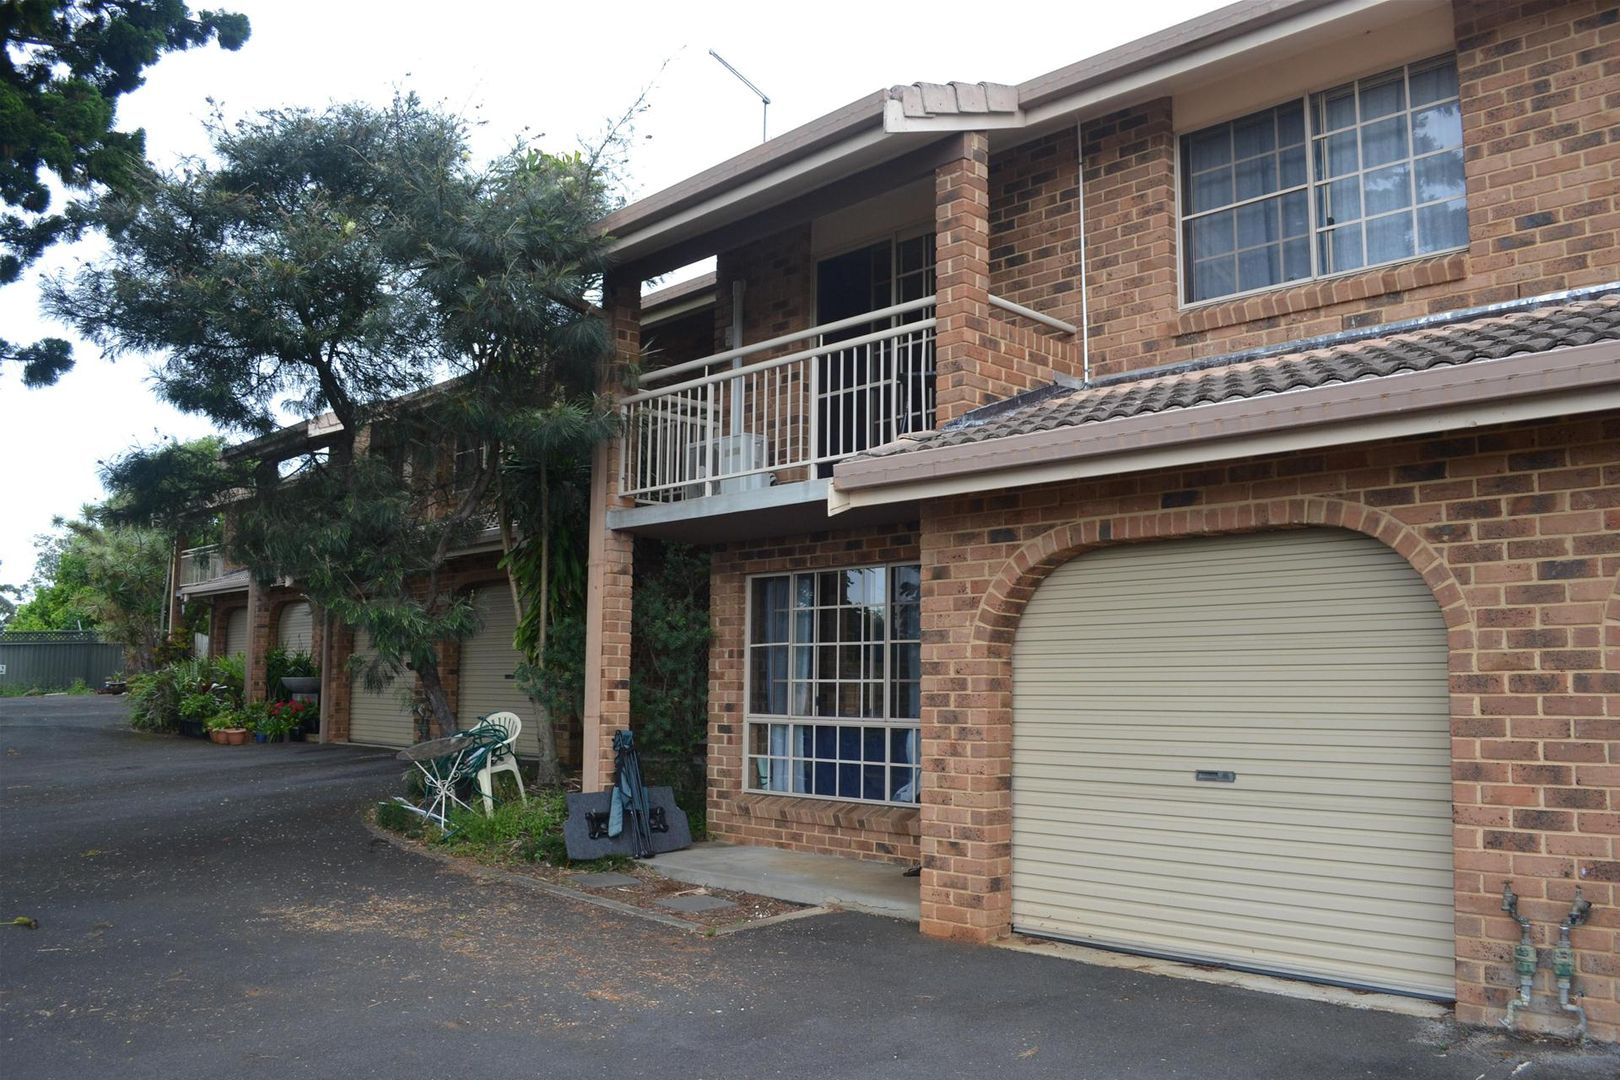 5/32-34 Hillview Drive, Goonellabah NSW 2480, Image 0